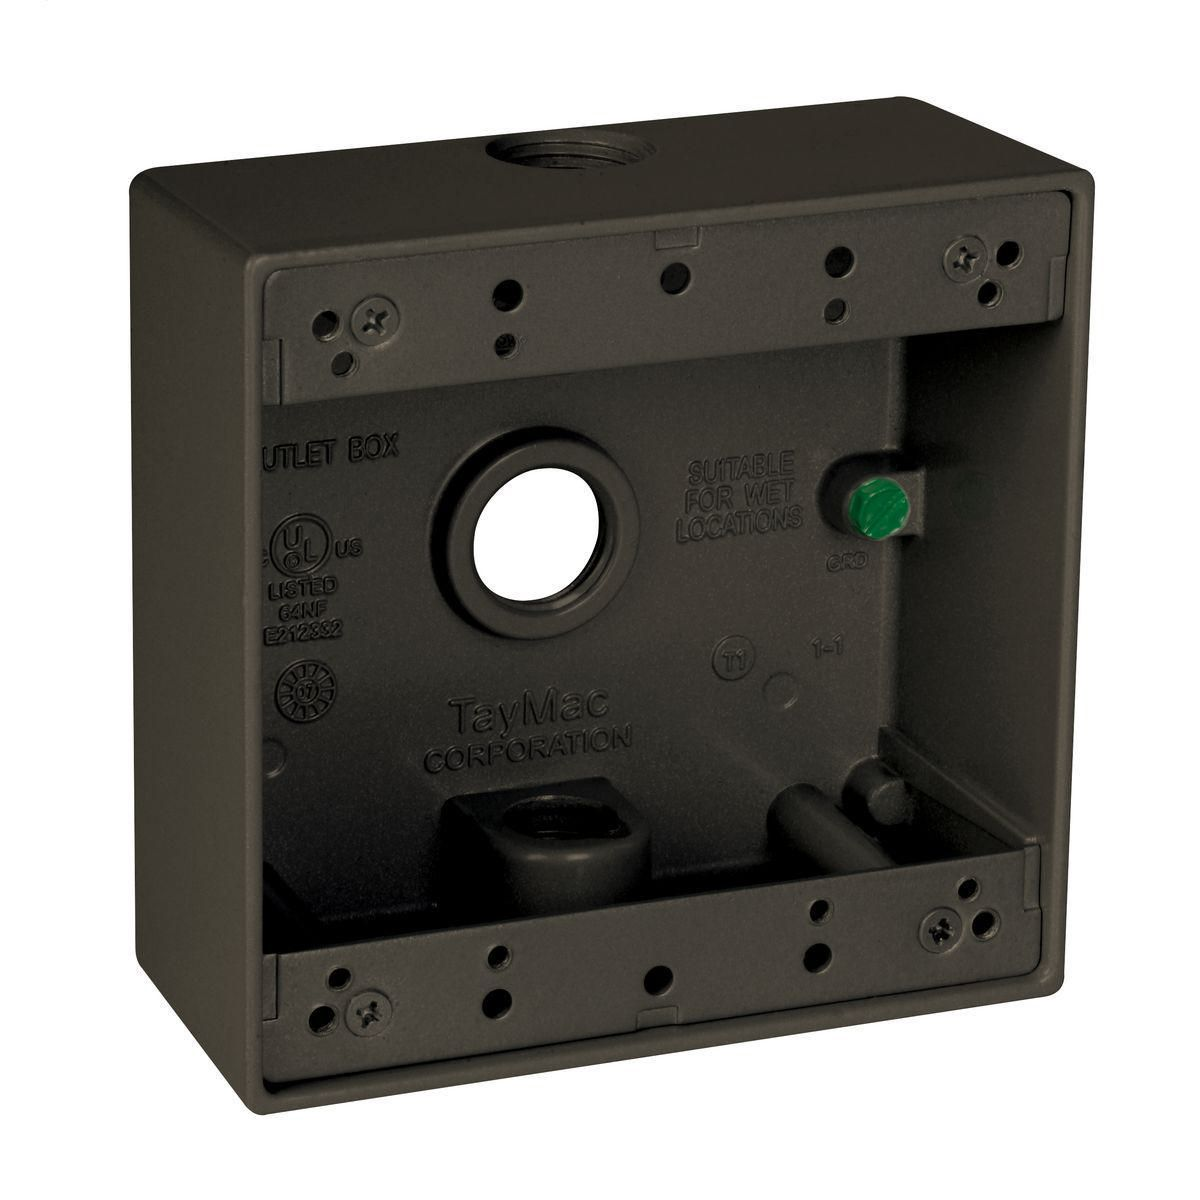 2G WP BOX (3) 1/2 IN. OUTLETS - BRONZE